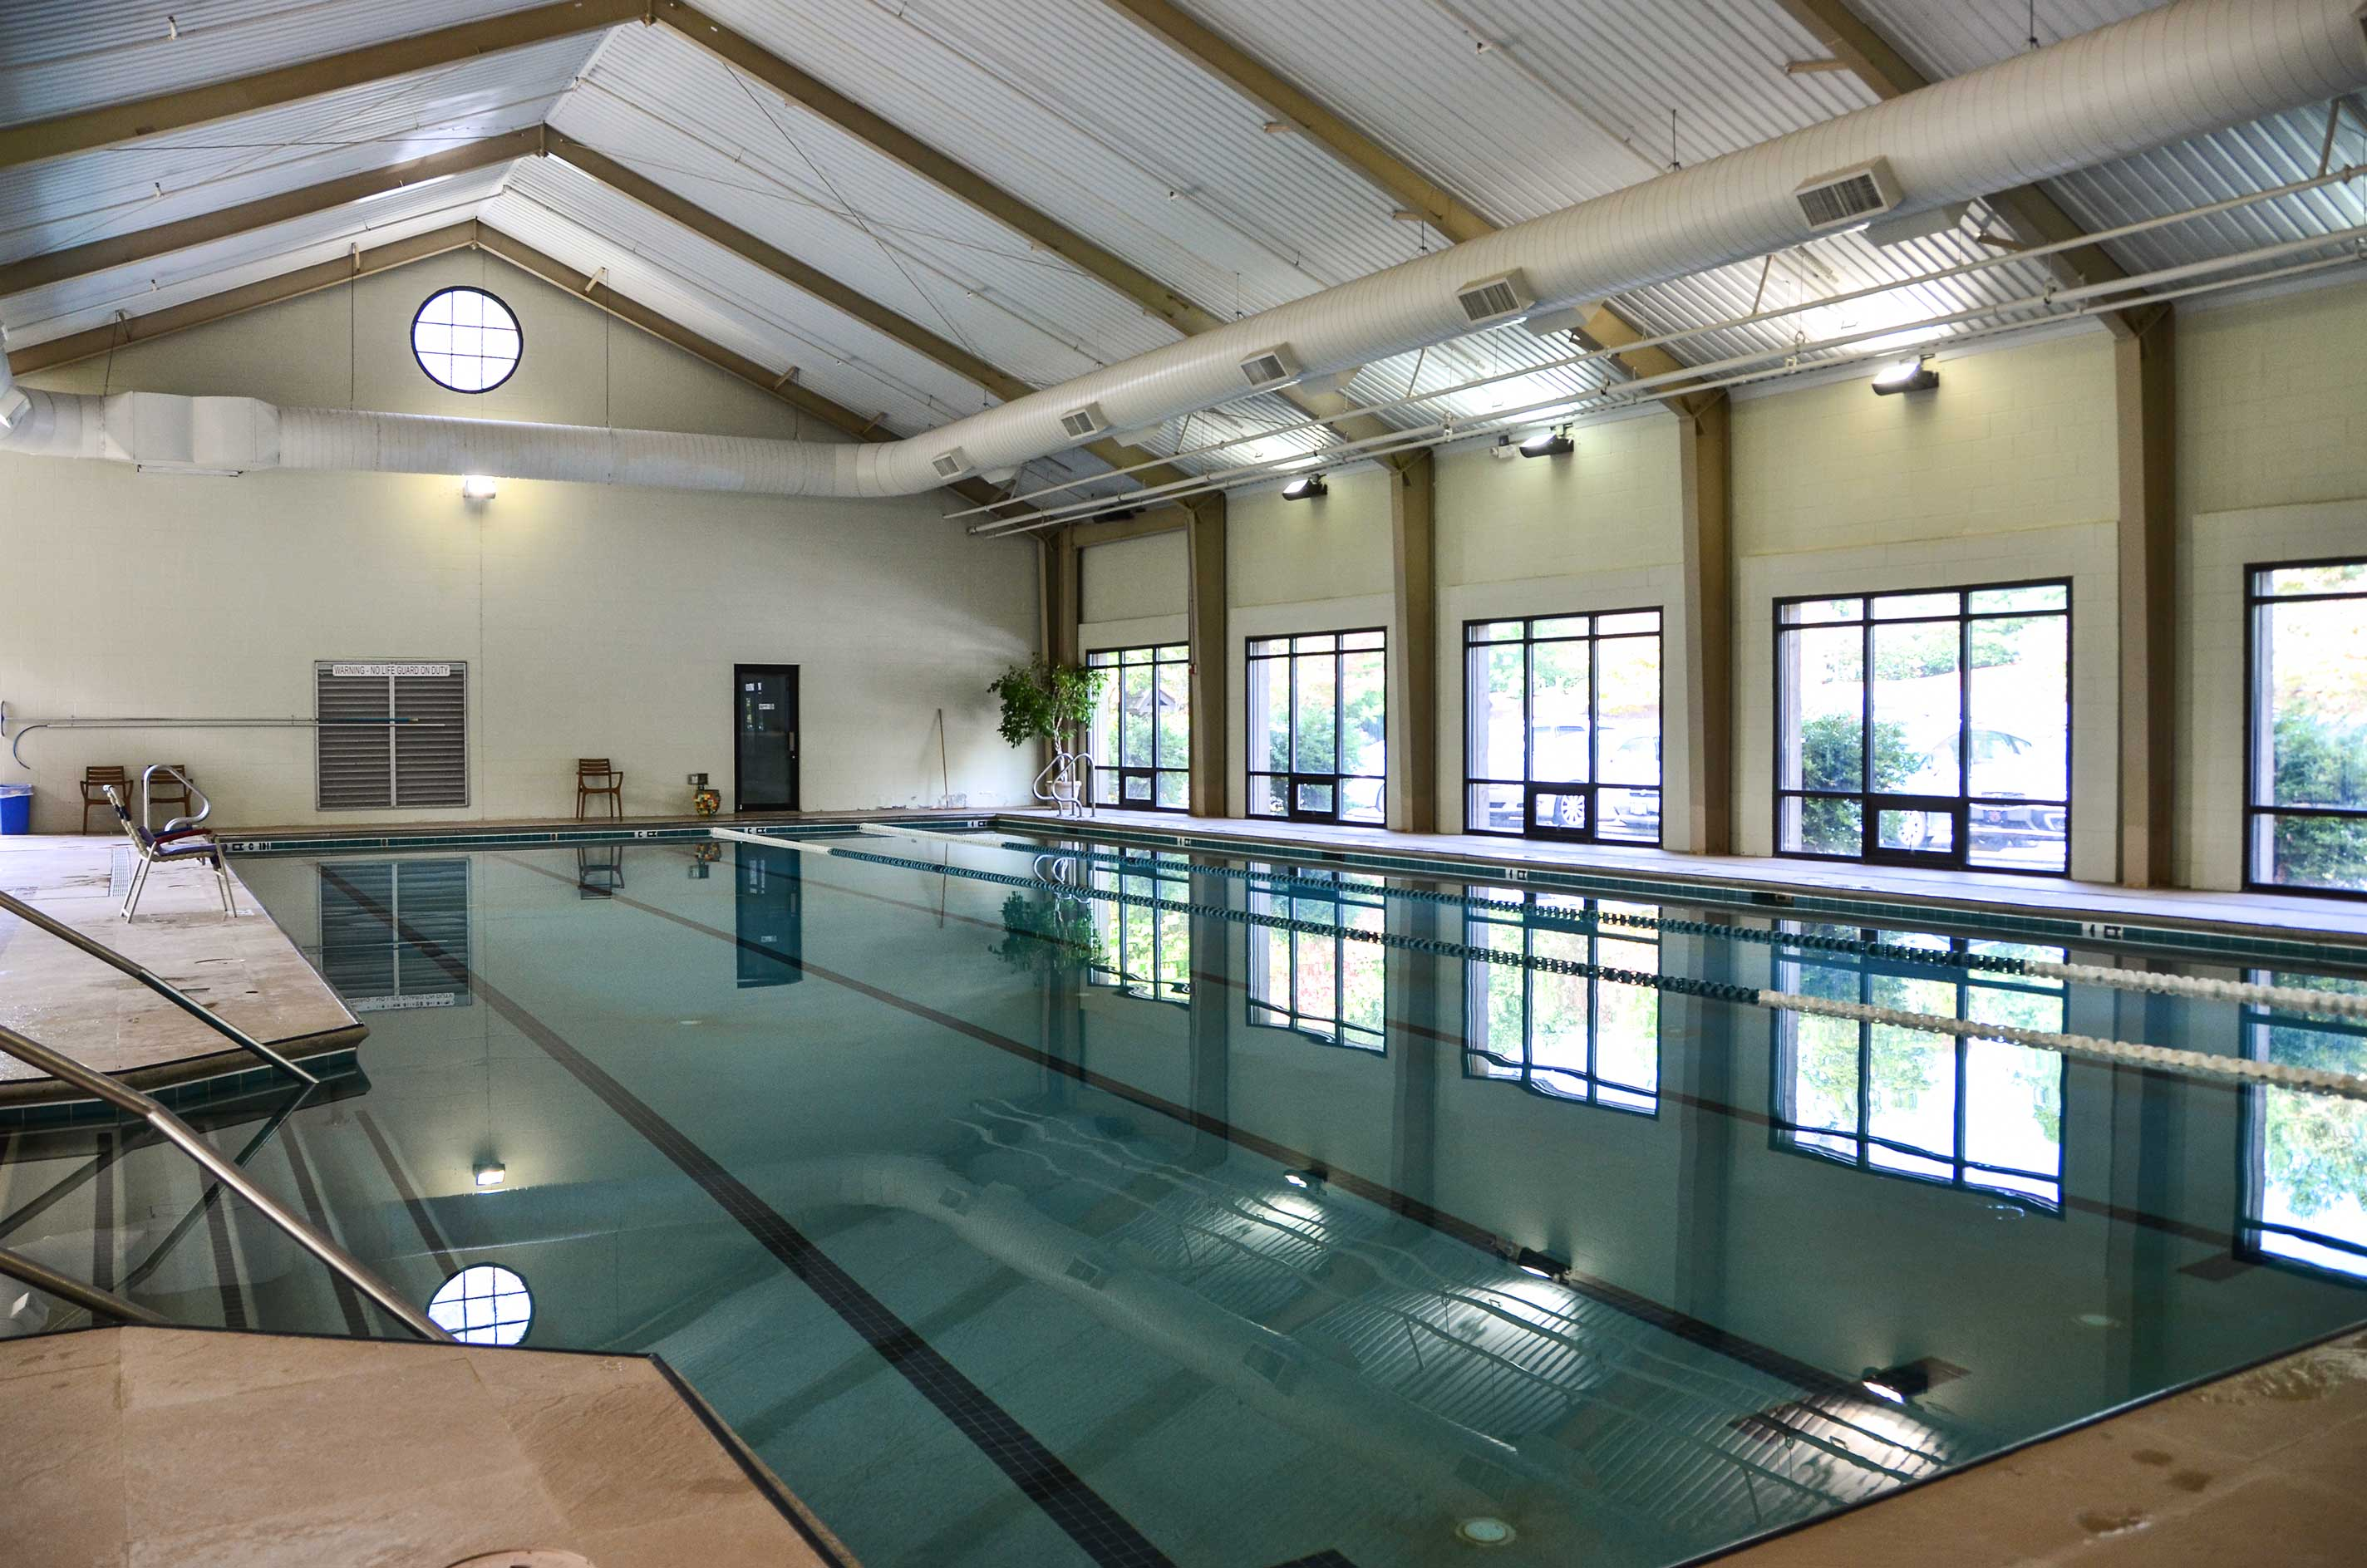 Even on rainy days you can make a splash at this indoor pool!